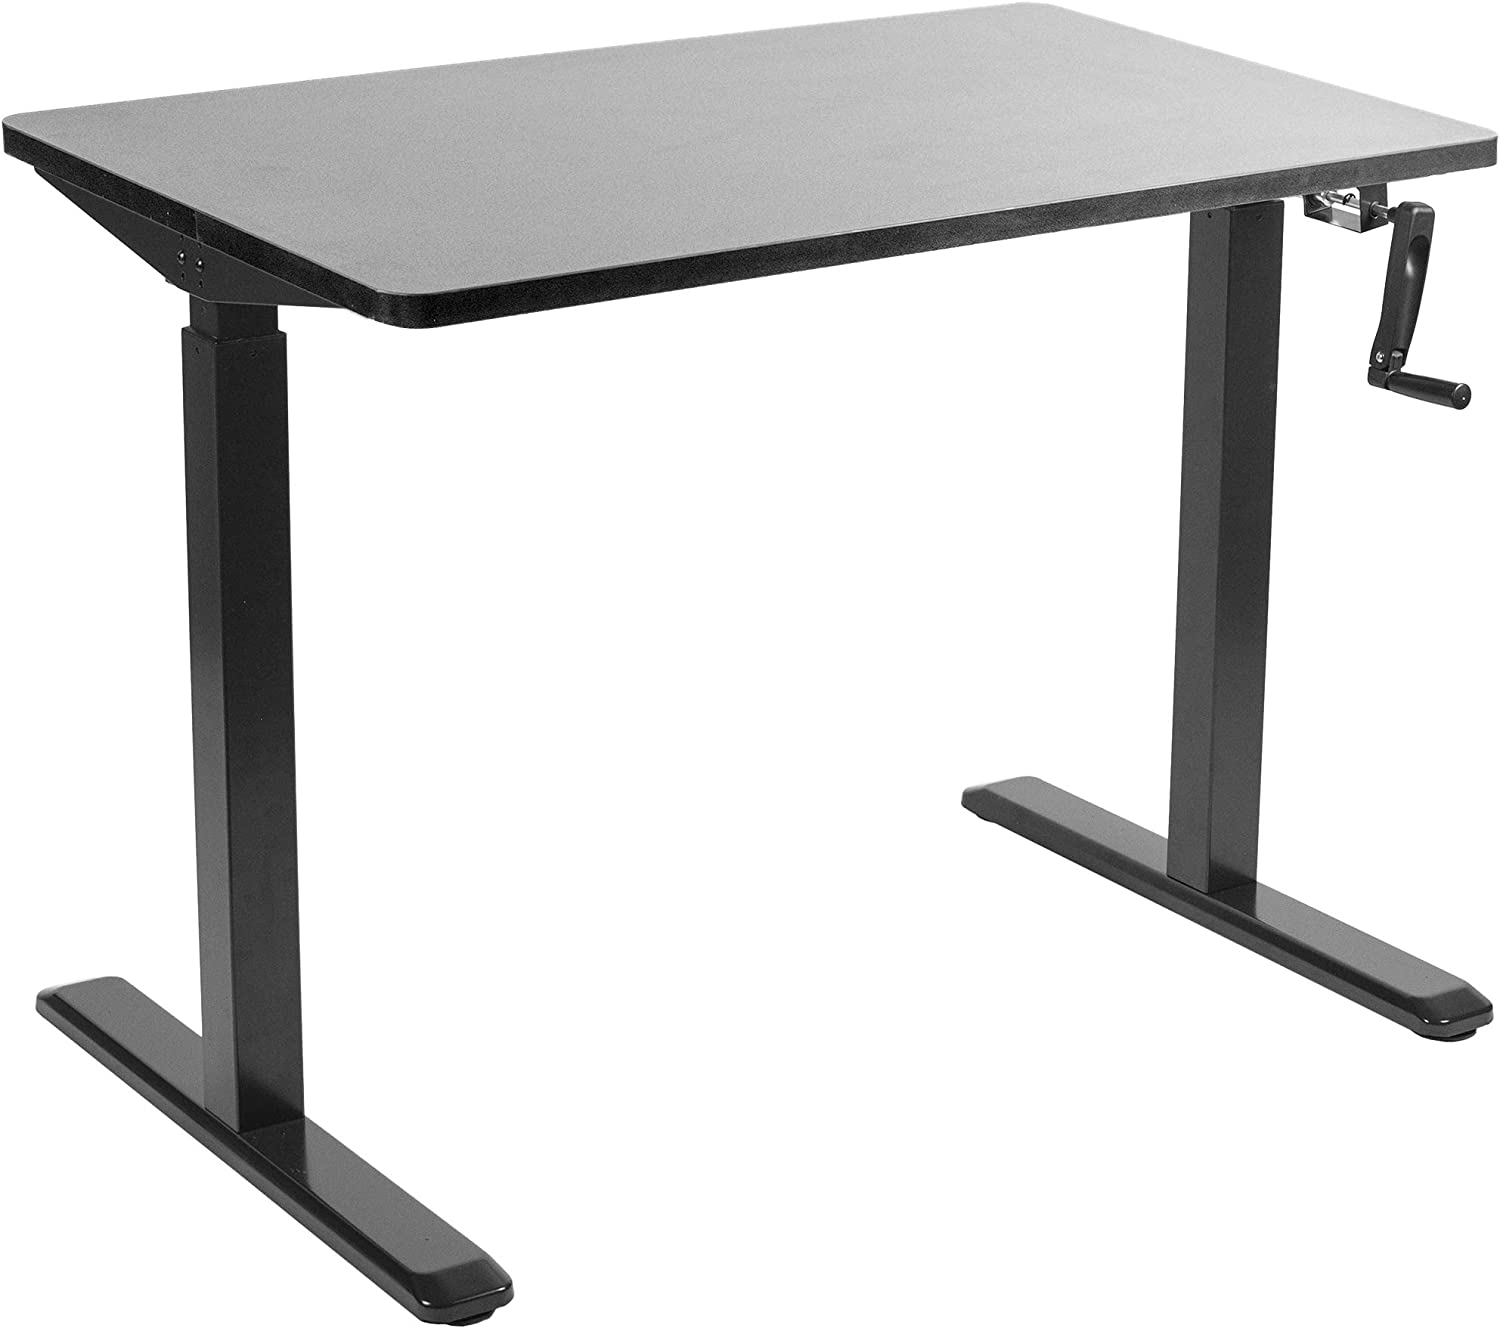 VIVO Manual 43 x 24 Stand Up Desk Black Table Top, Black Frame, Height Adjustable Standing Workstation with Hand Crank DESK-KIT-MB4B